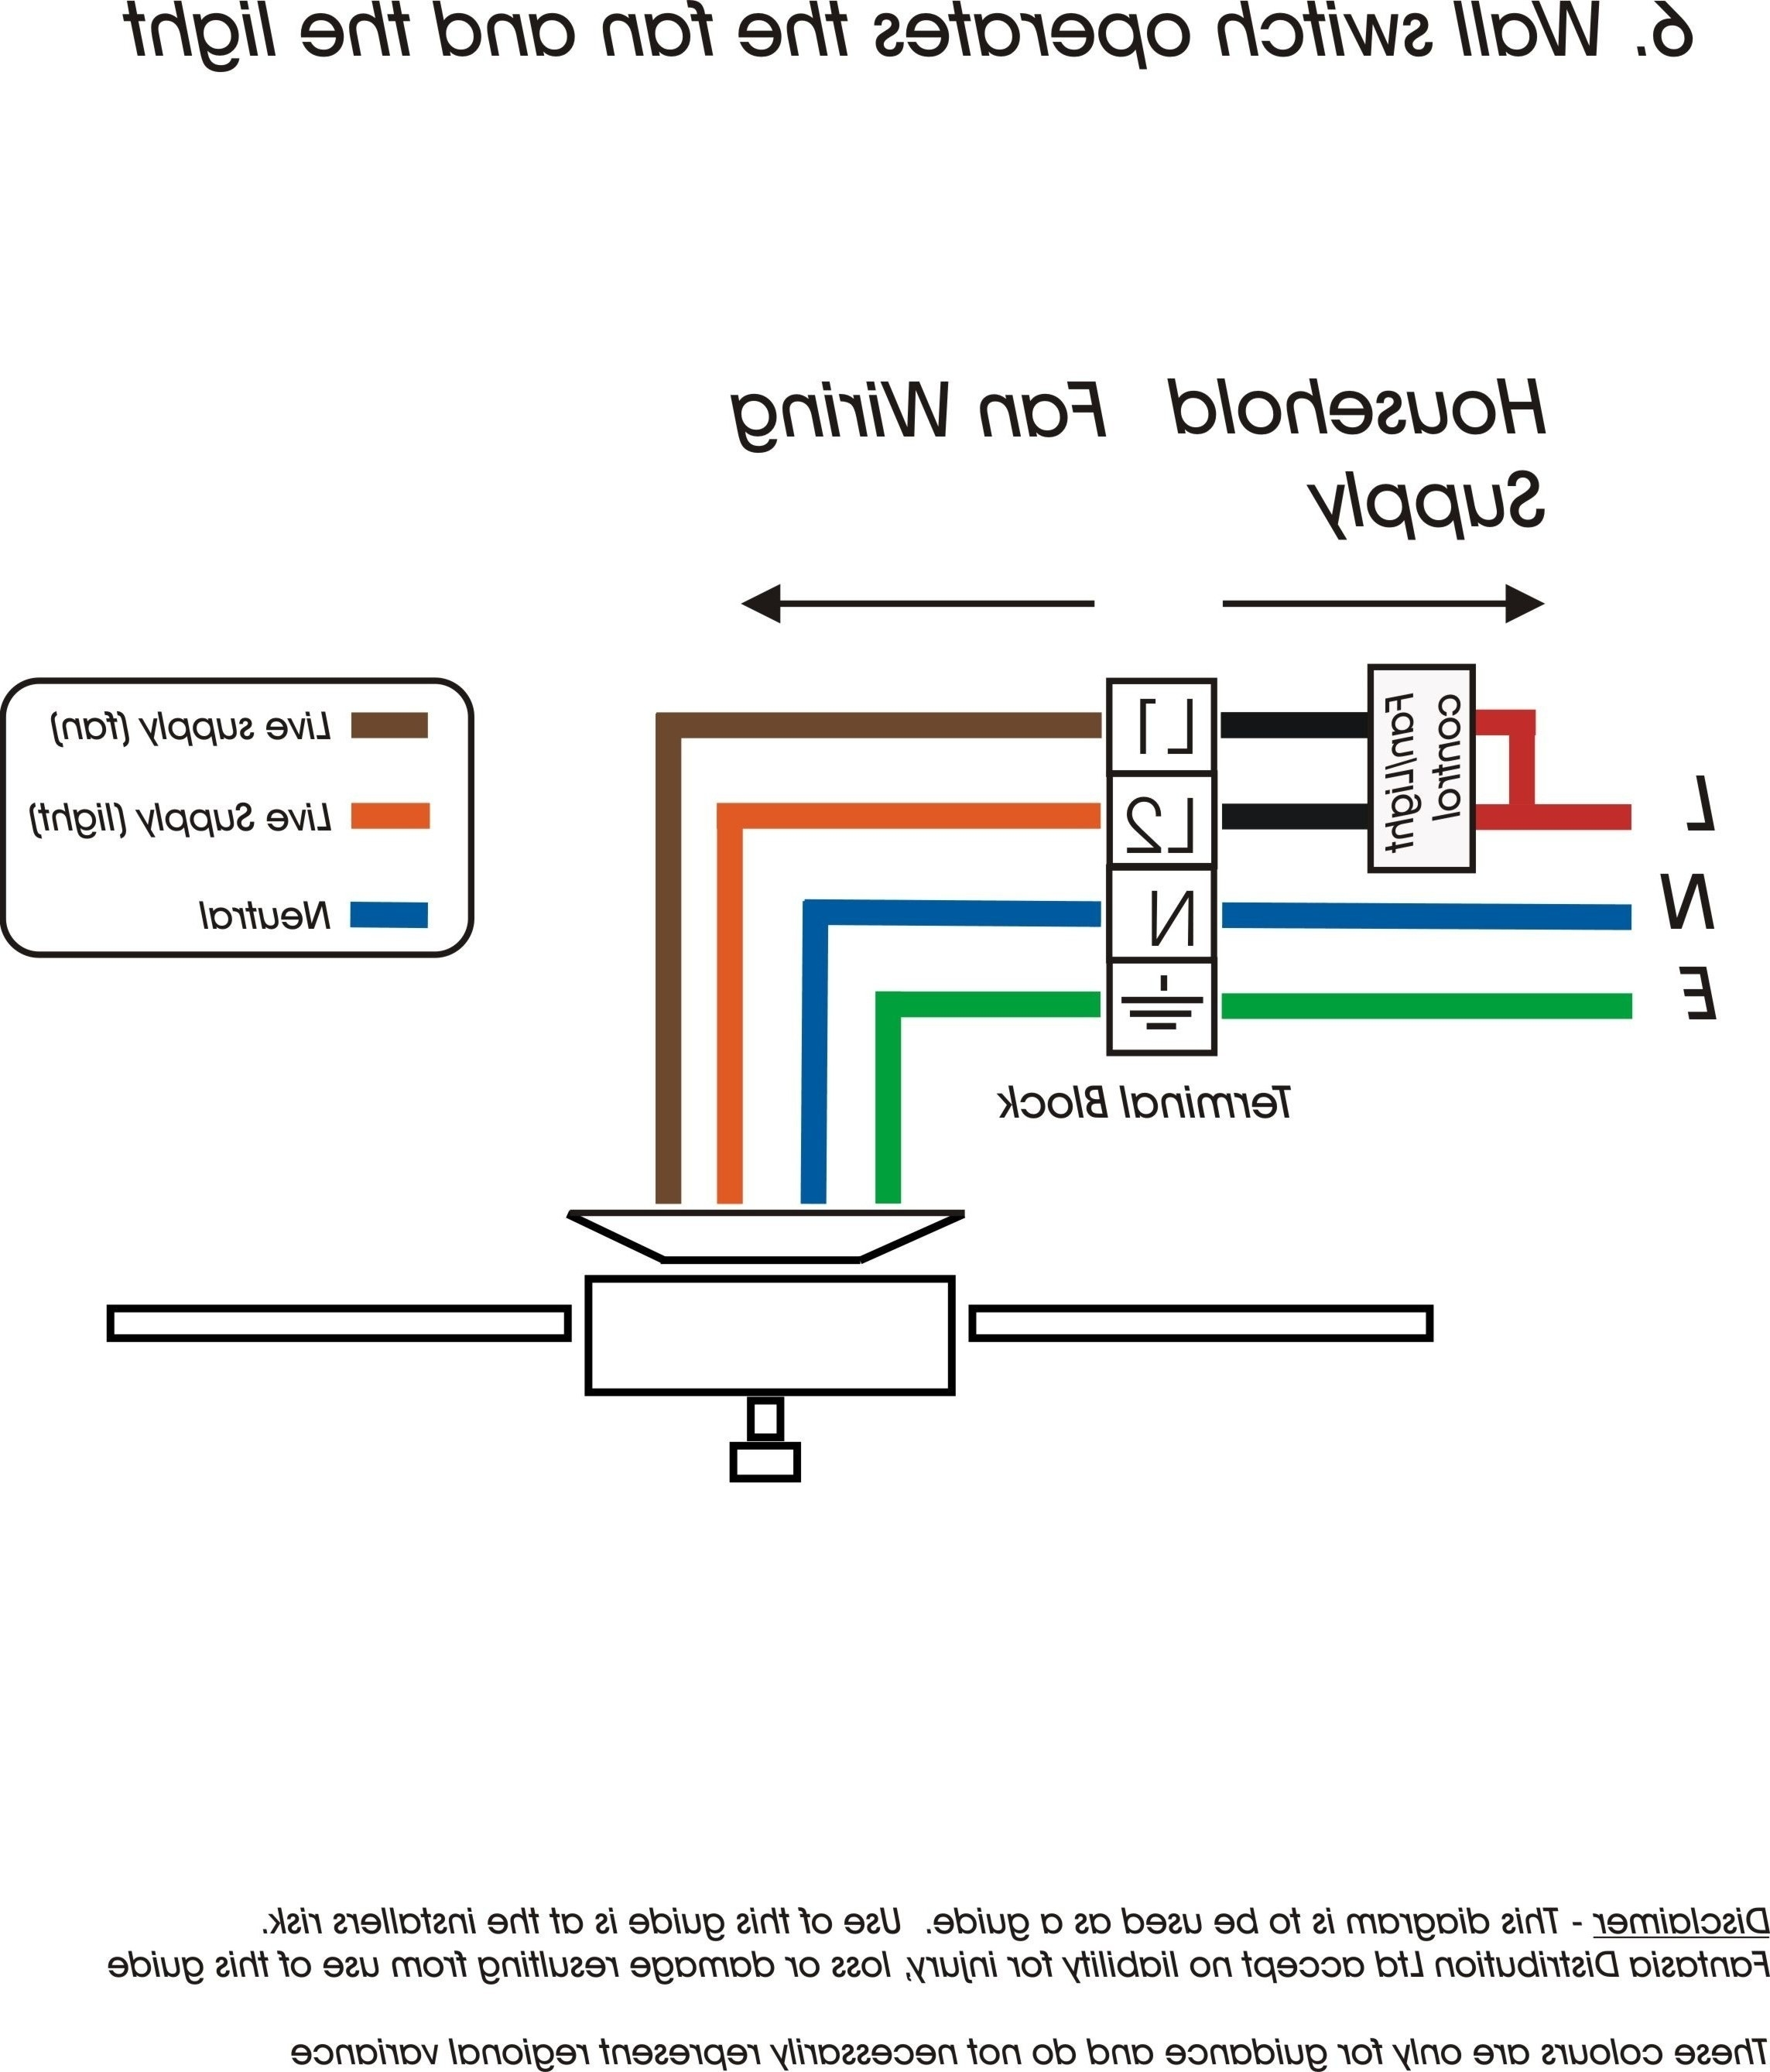 Casablanca Fan Wiring Diagram | Free Wiring Diagram on wiring 2 switches to 1 light, wiring 3-way switches together, wiring two switches in one box, wiring two switches together,